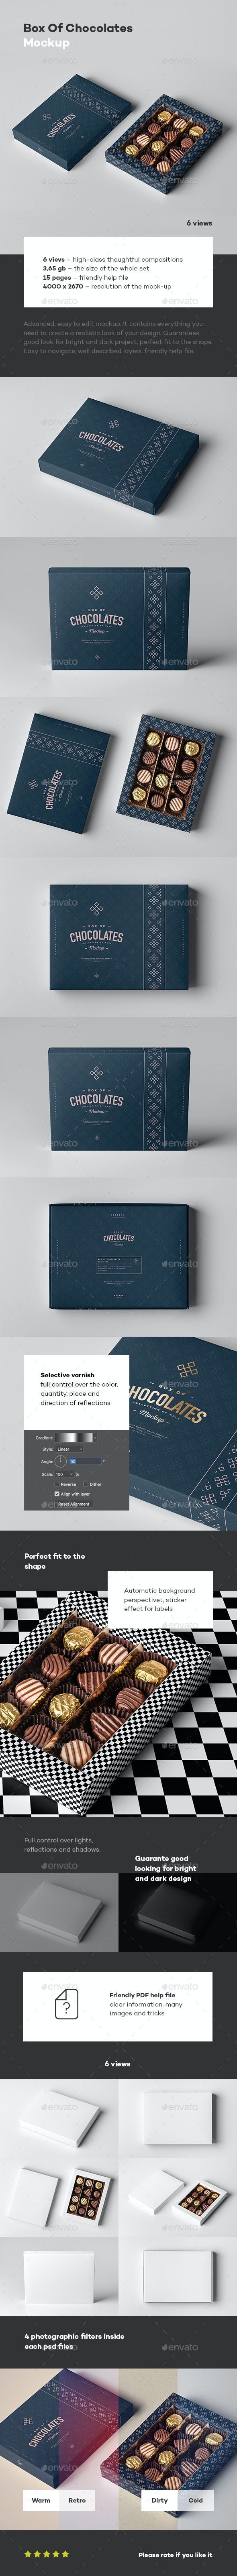 Box Of Chocolates Mock-up - Food and Drink Packaging